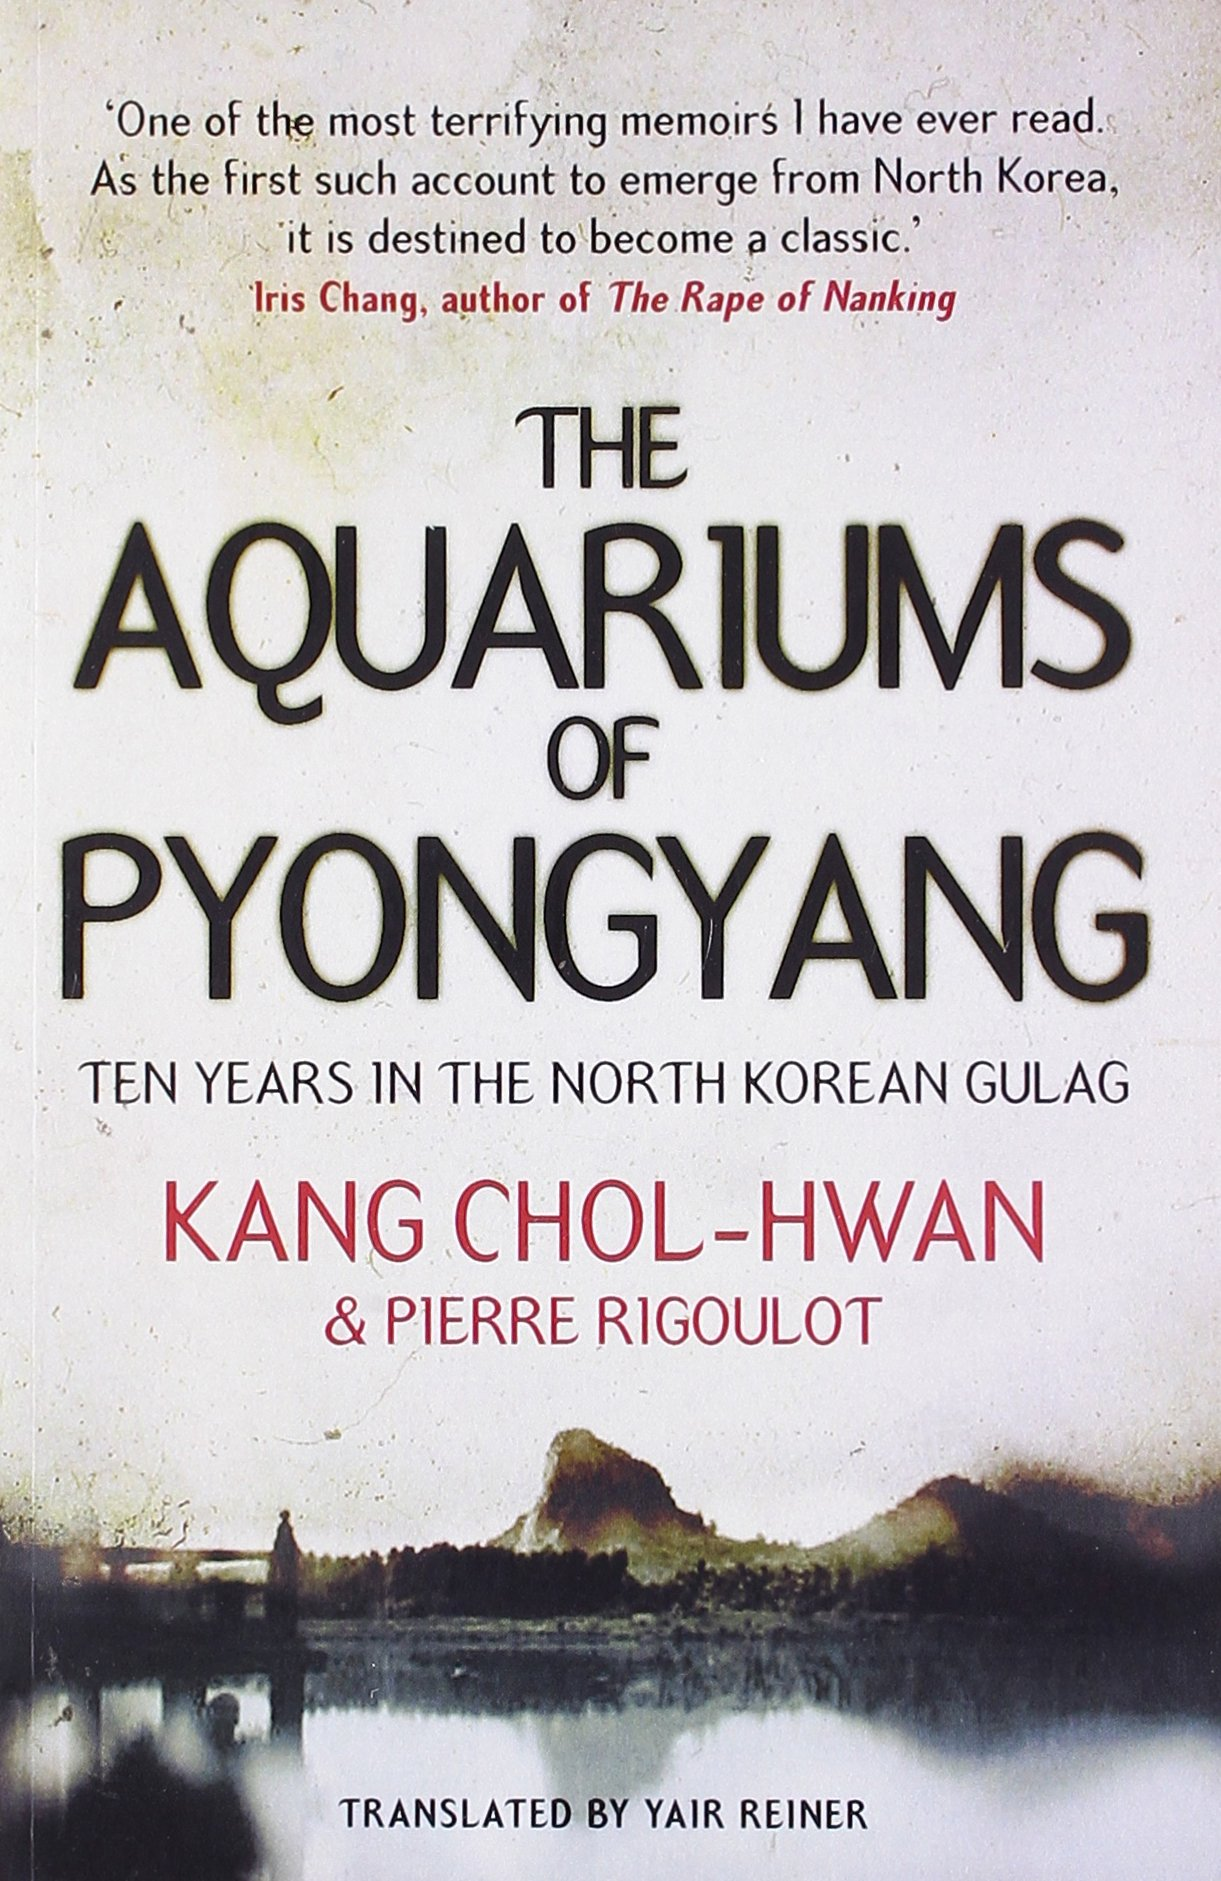 The Aquariums of Pyongyang by Kang Chol-hwan